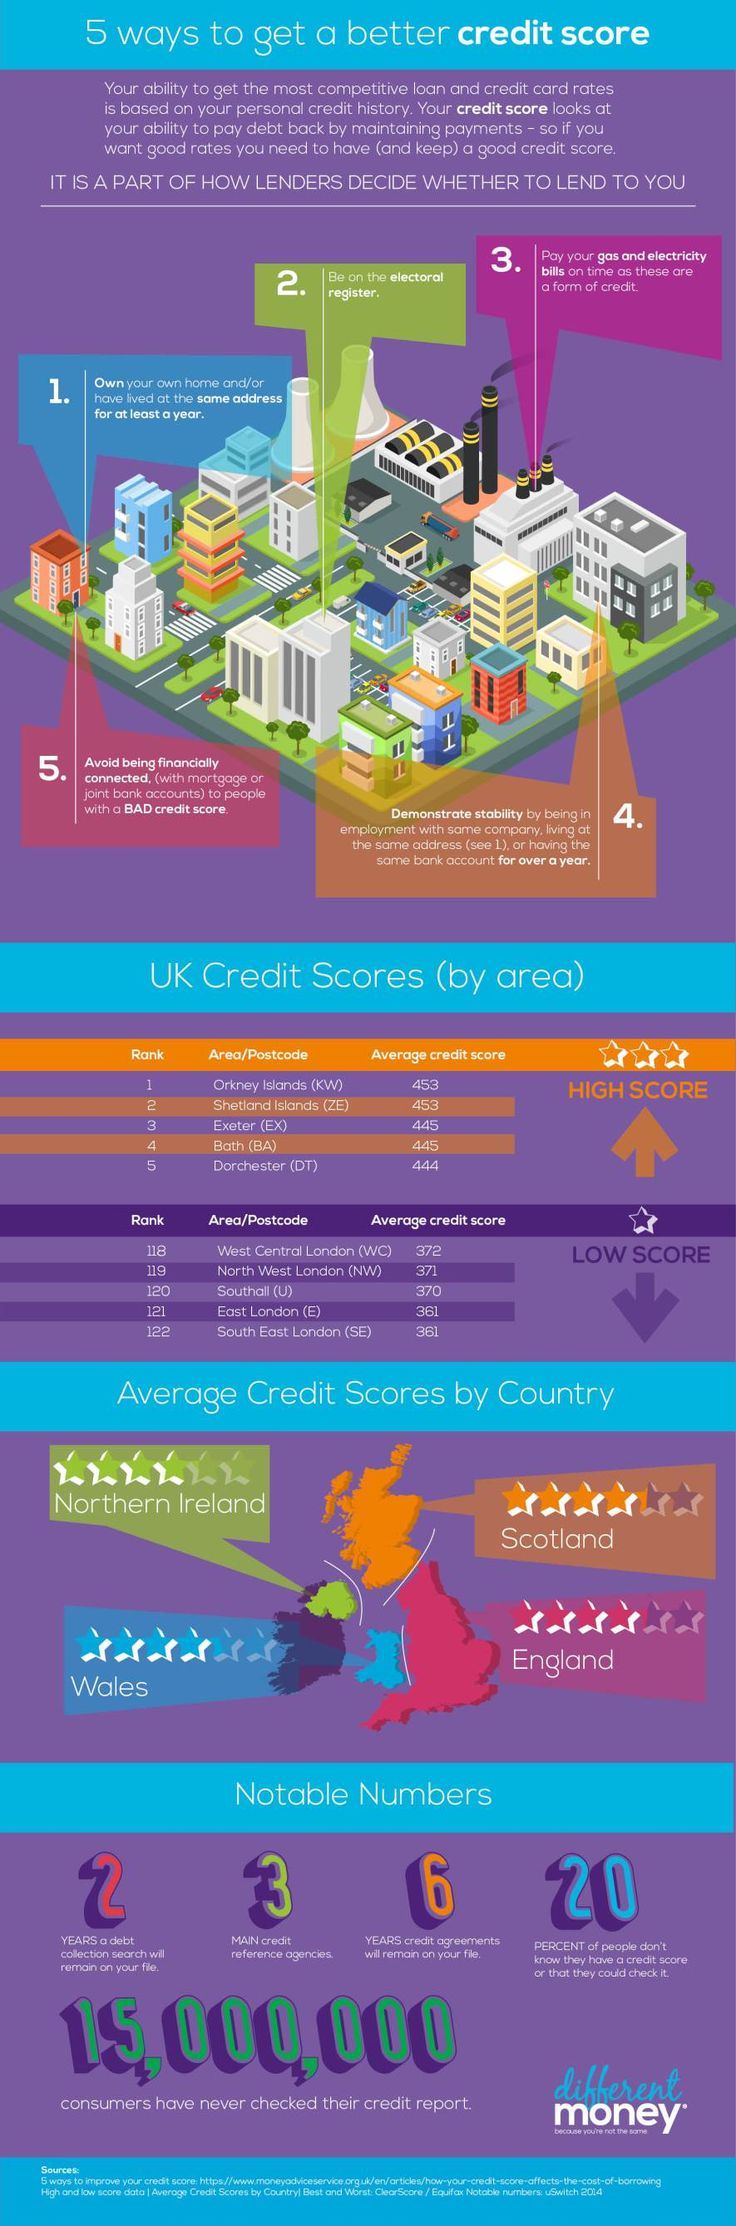 How to get a better credit score and gtreat money management tips and ideas. Money wisdom and money tools can really positively impact your finances